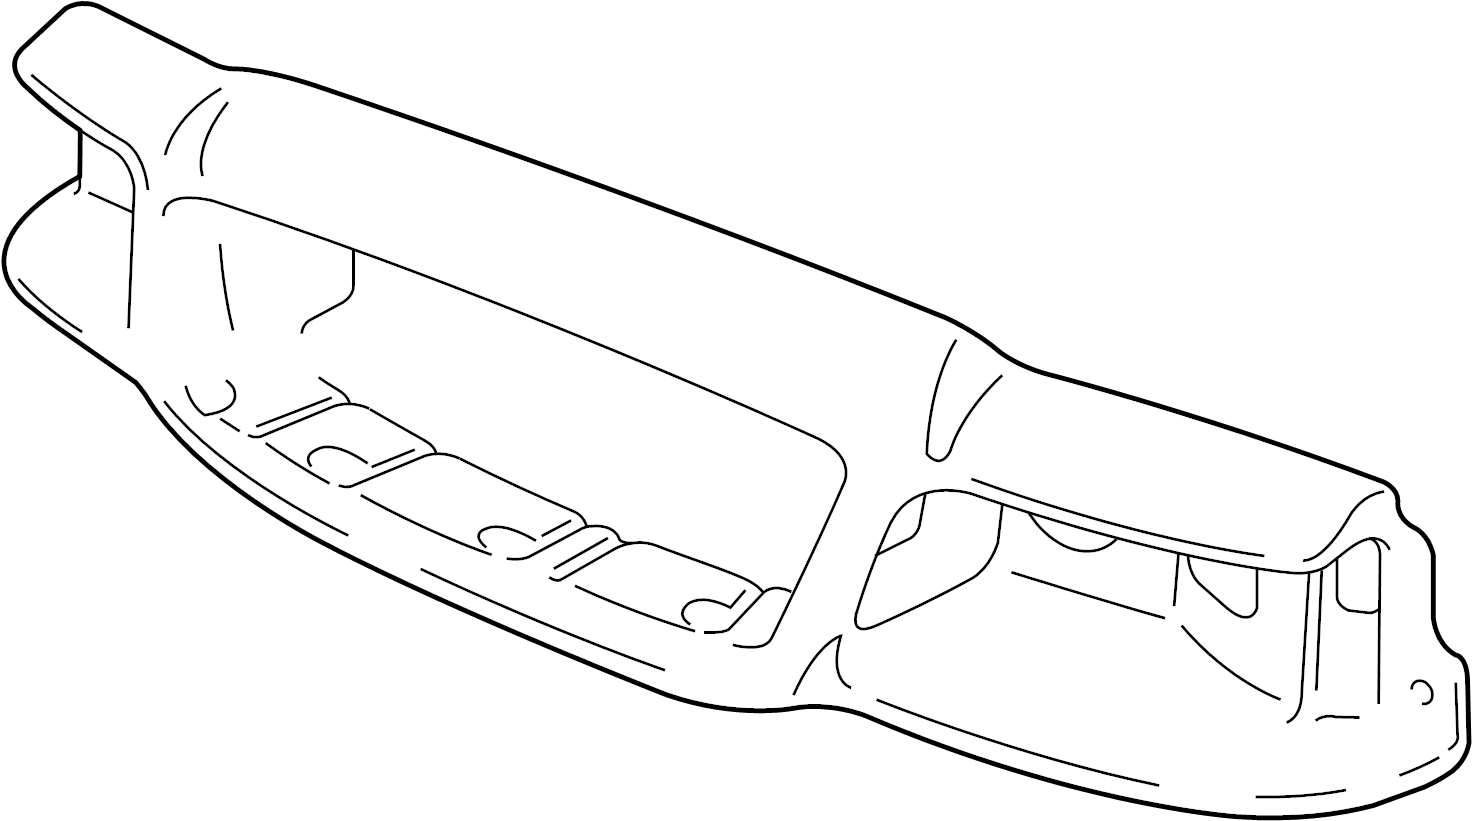 Ford Crown Victoria Headlight Mounting Panel Front